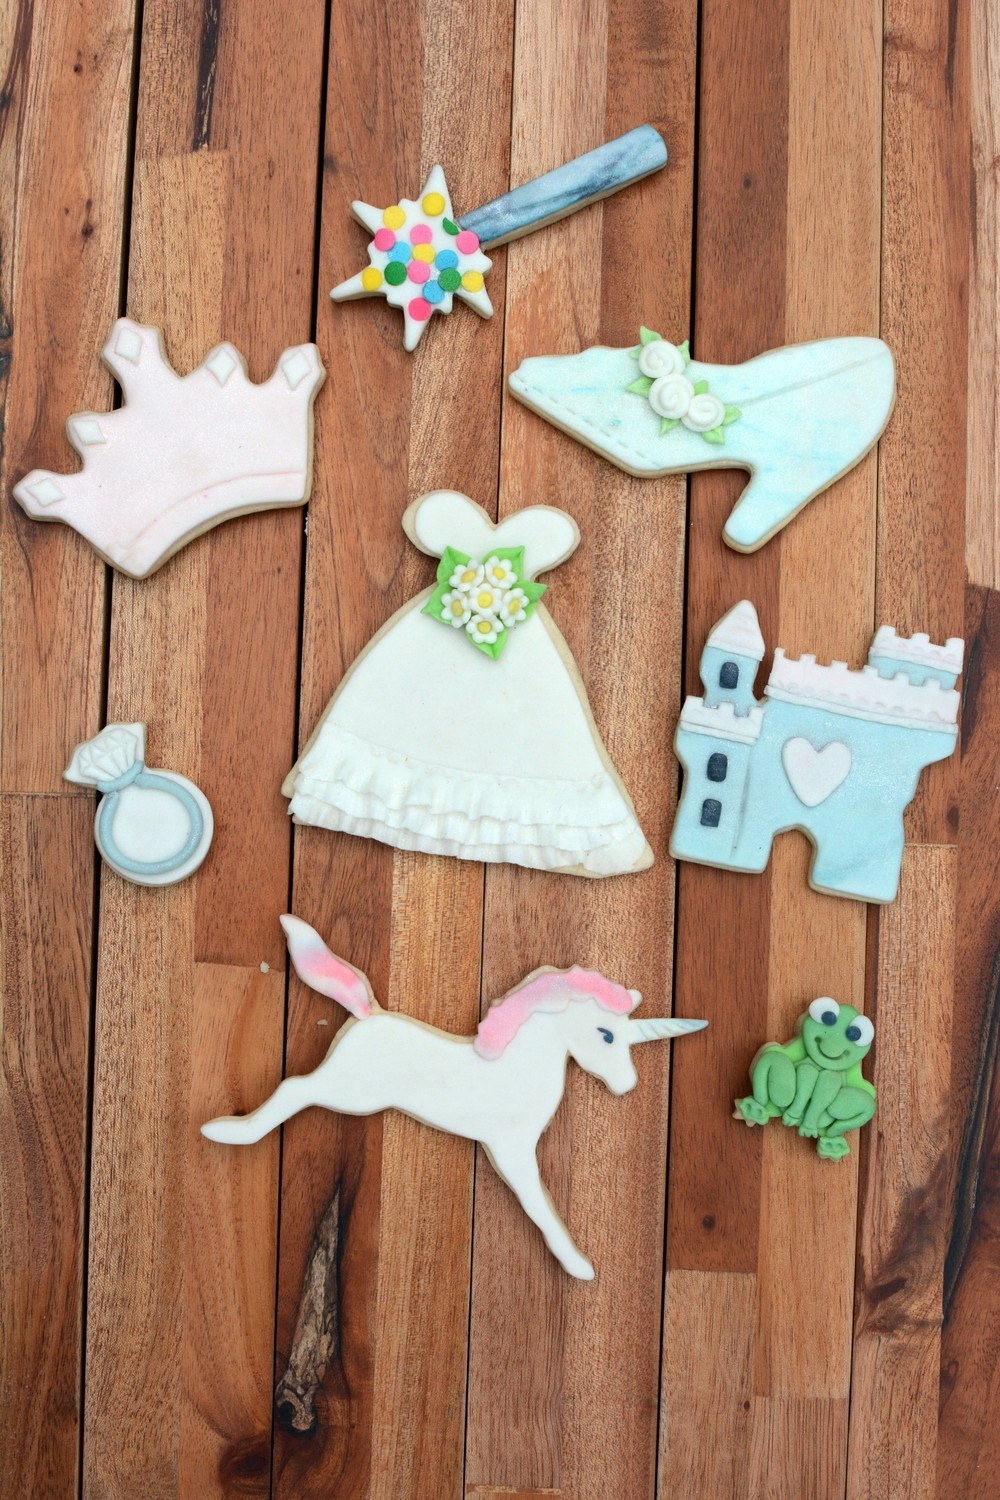 By AH -Set of 8 Cookie Cutters 'LITTLE PRINCESS - Σετ 8 τεμ κουπ πατ Μικρή Πριγκίπισσα 8εκ